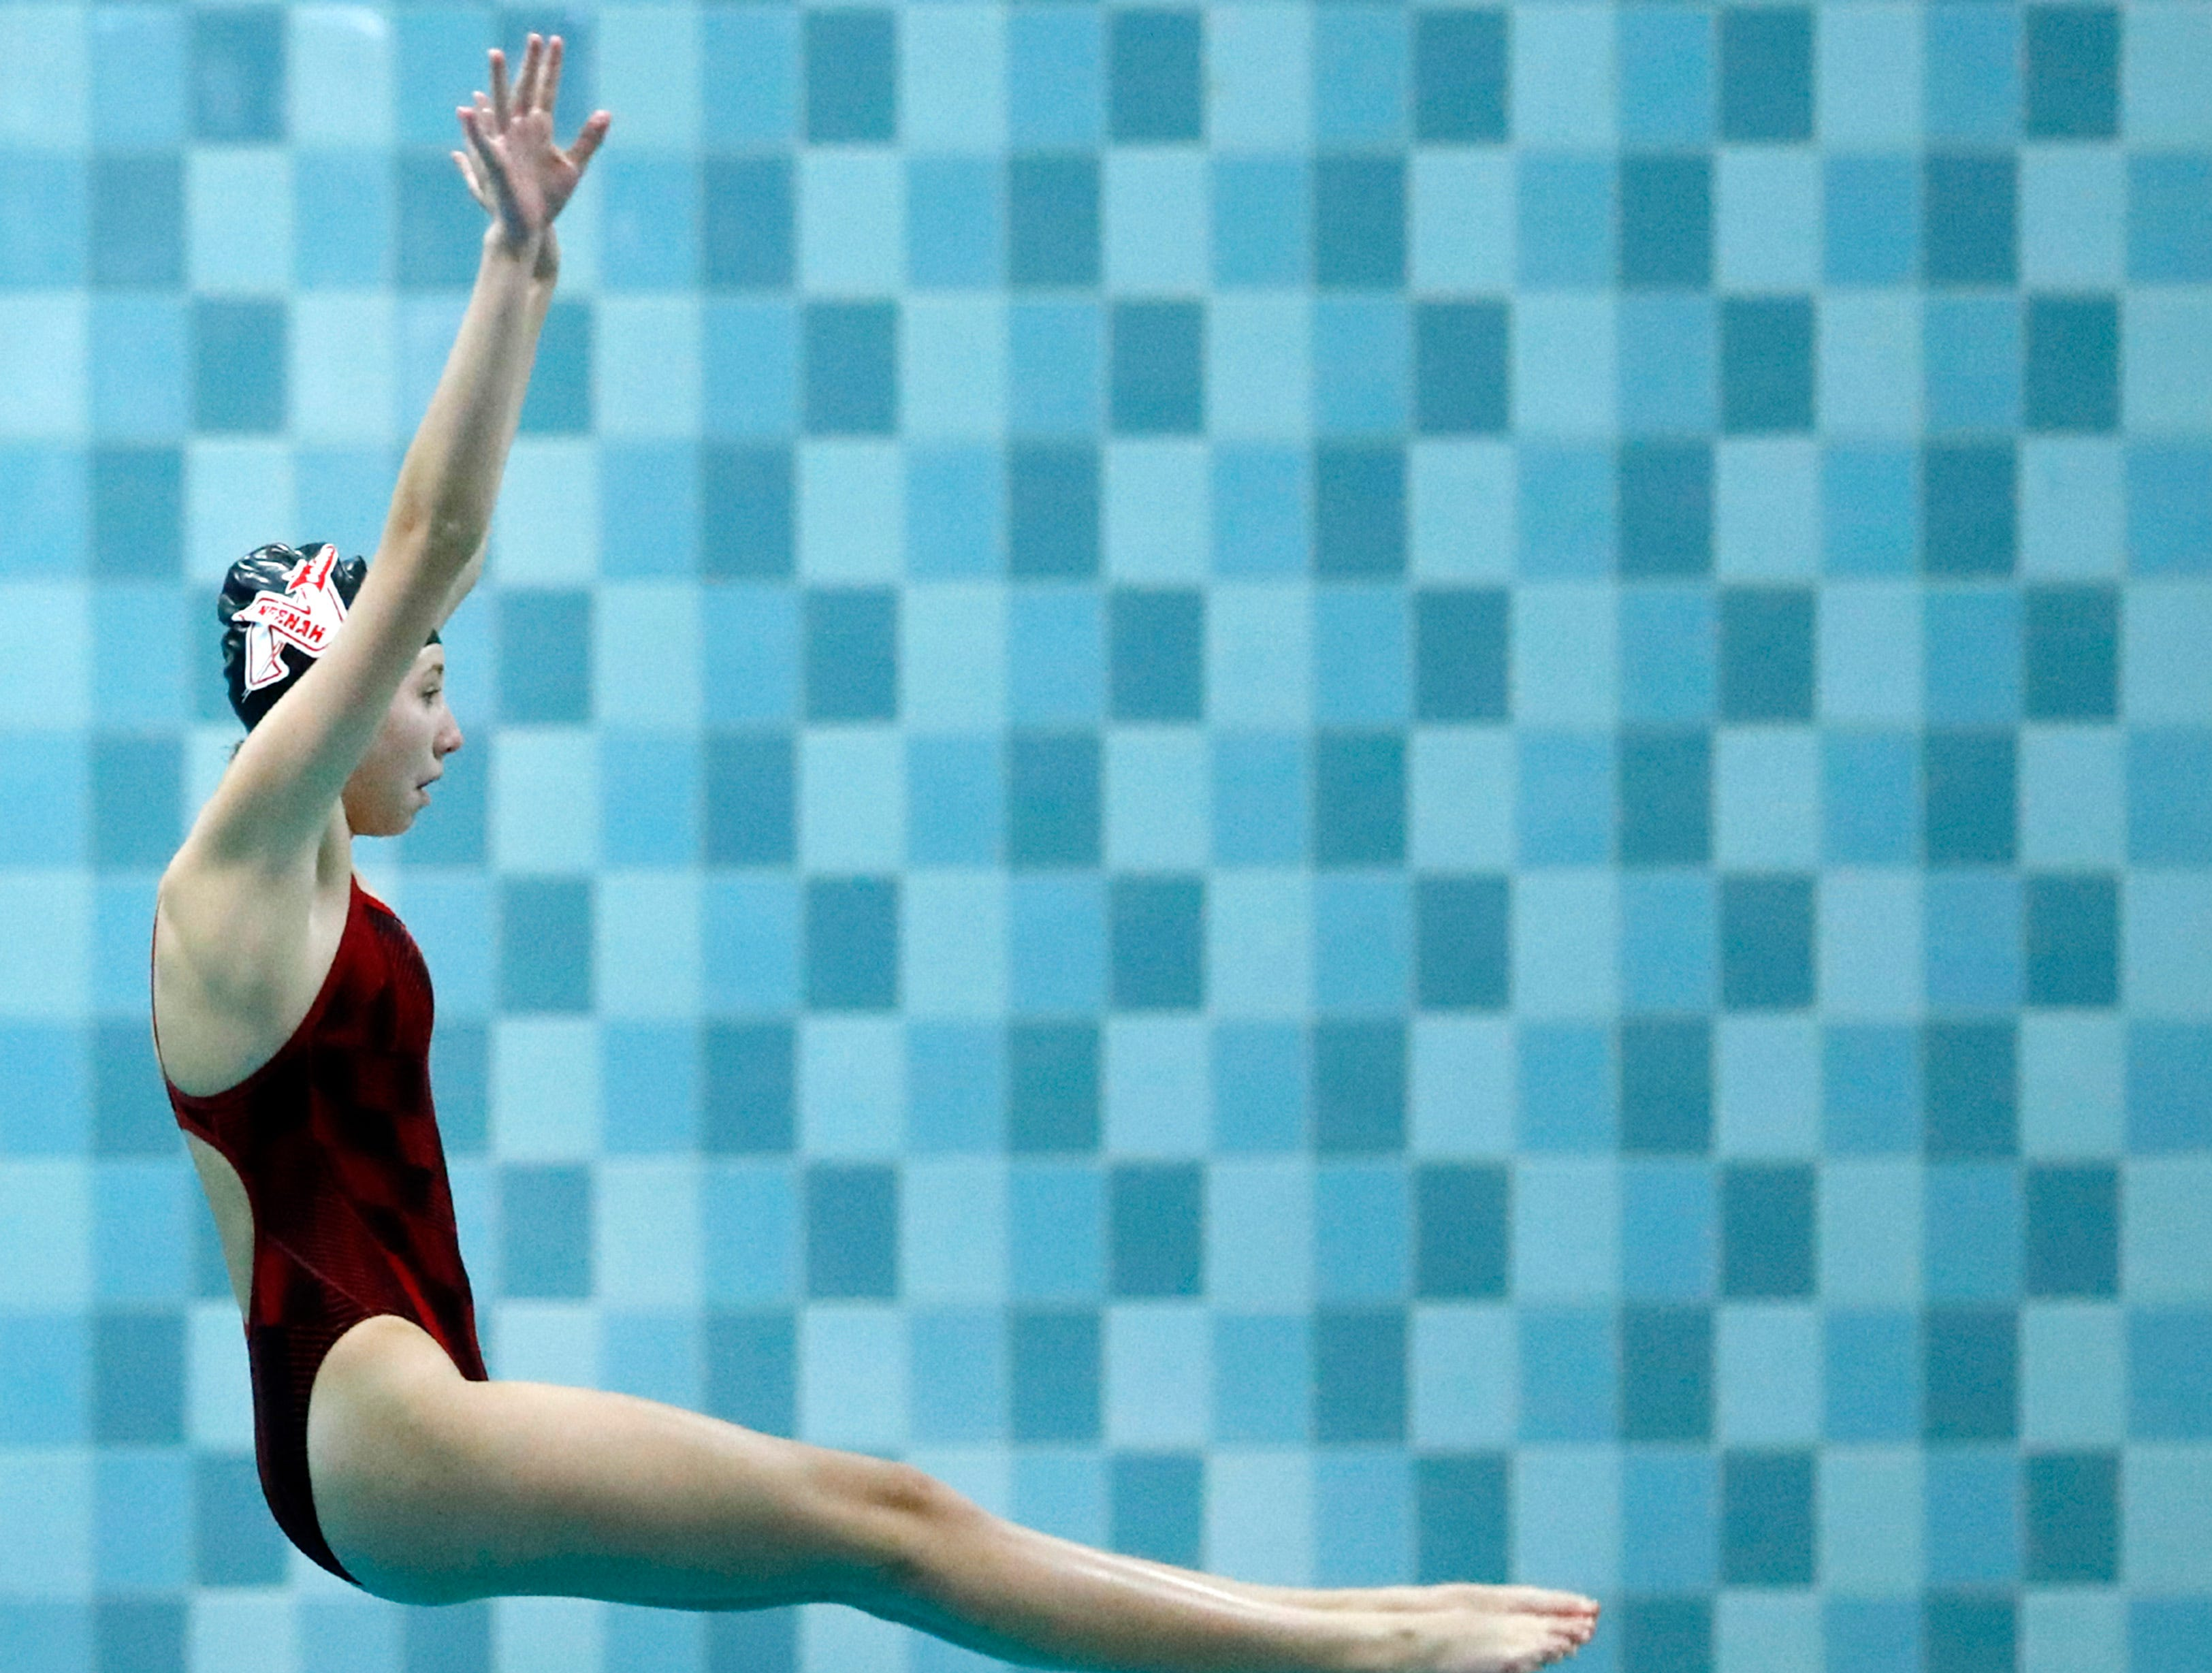 Neenah's Bailey Schroeder dives during the WIAA Division 1 State Swimming and Diving meet Saturday, Nov. 10, 2018, at the UW Natatorium in Madison, Wis.